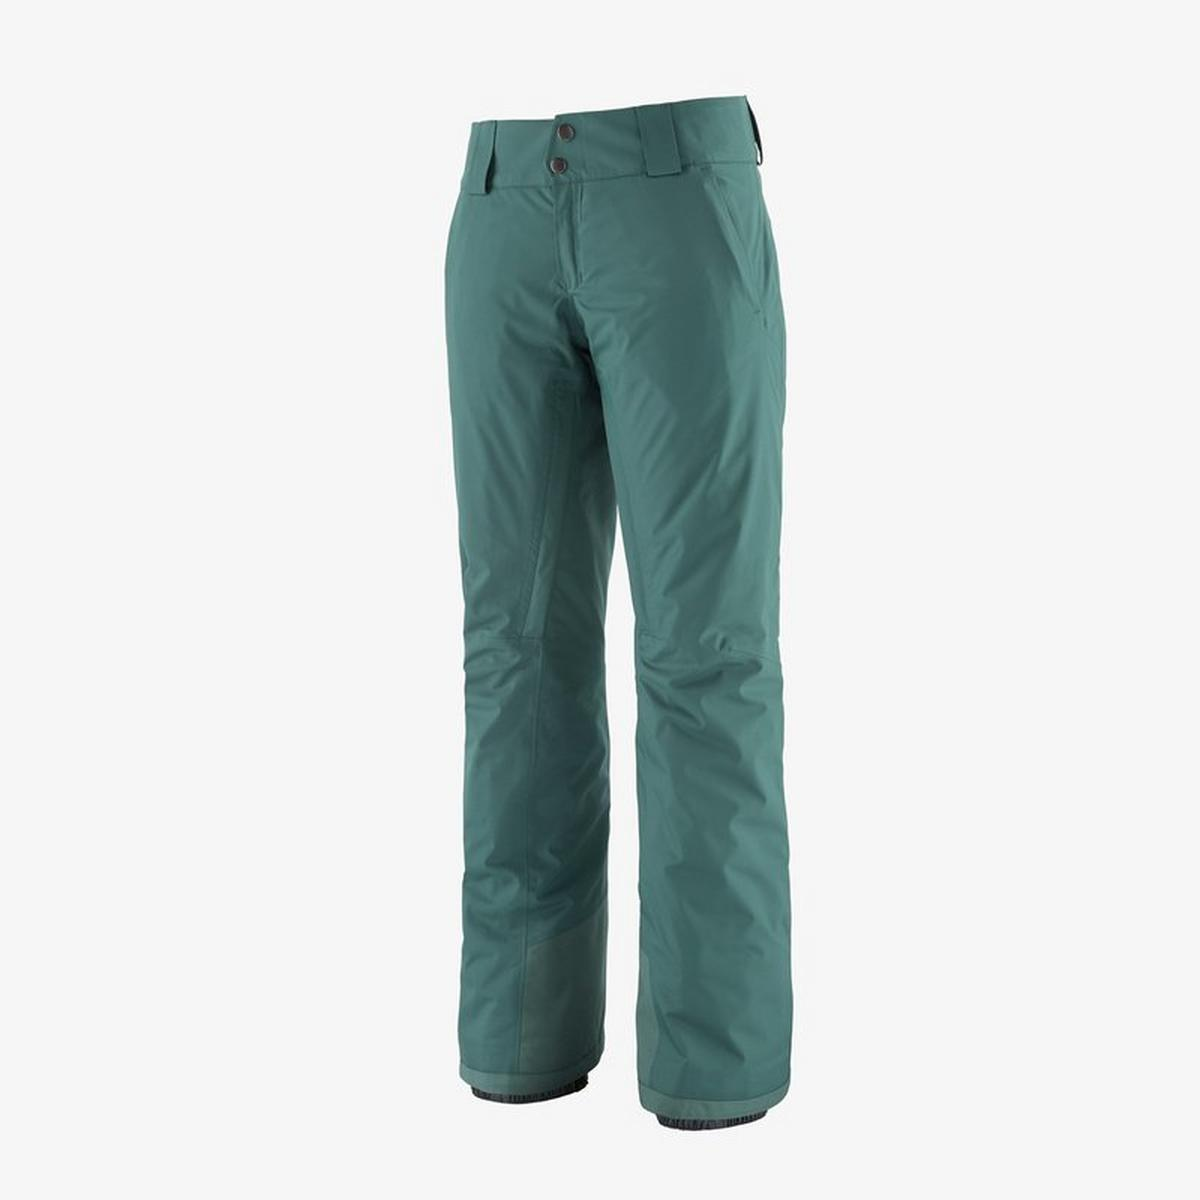 Patagonia Women's Patagonia Insulated Snowbelle Pant - Green